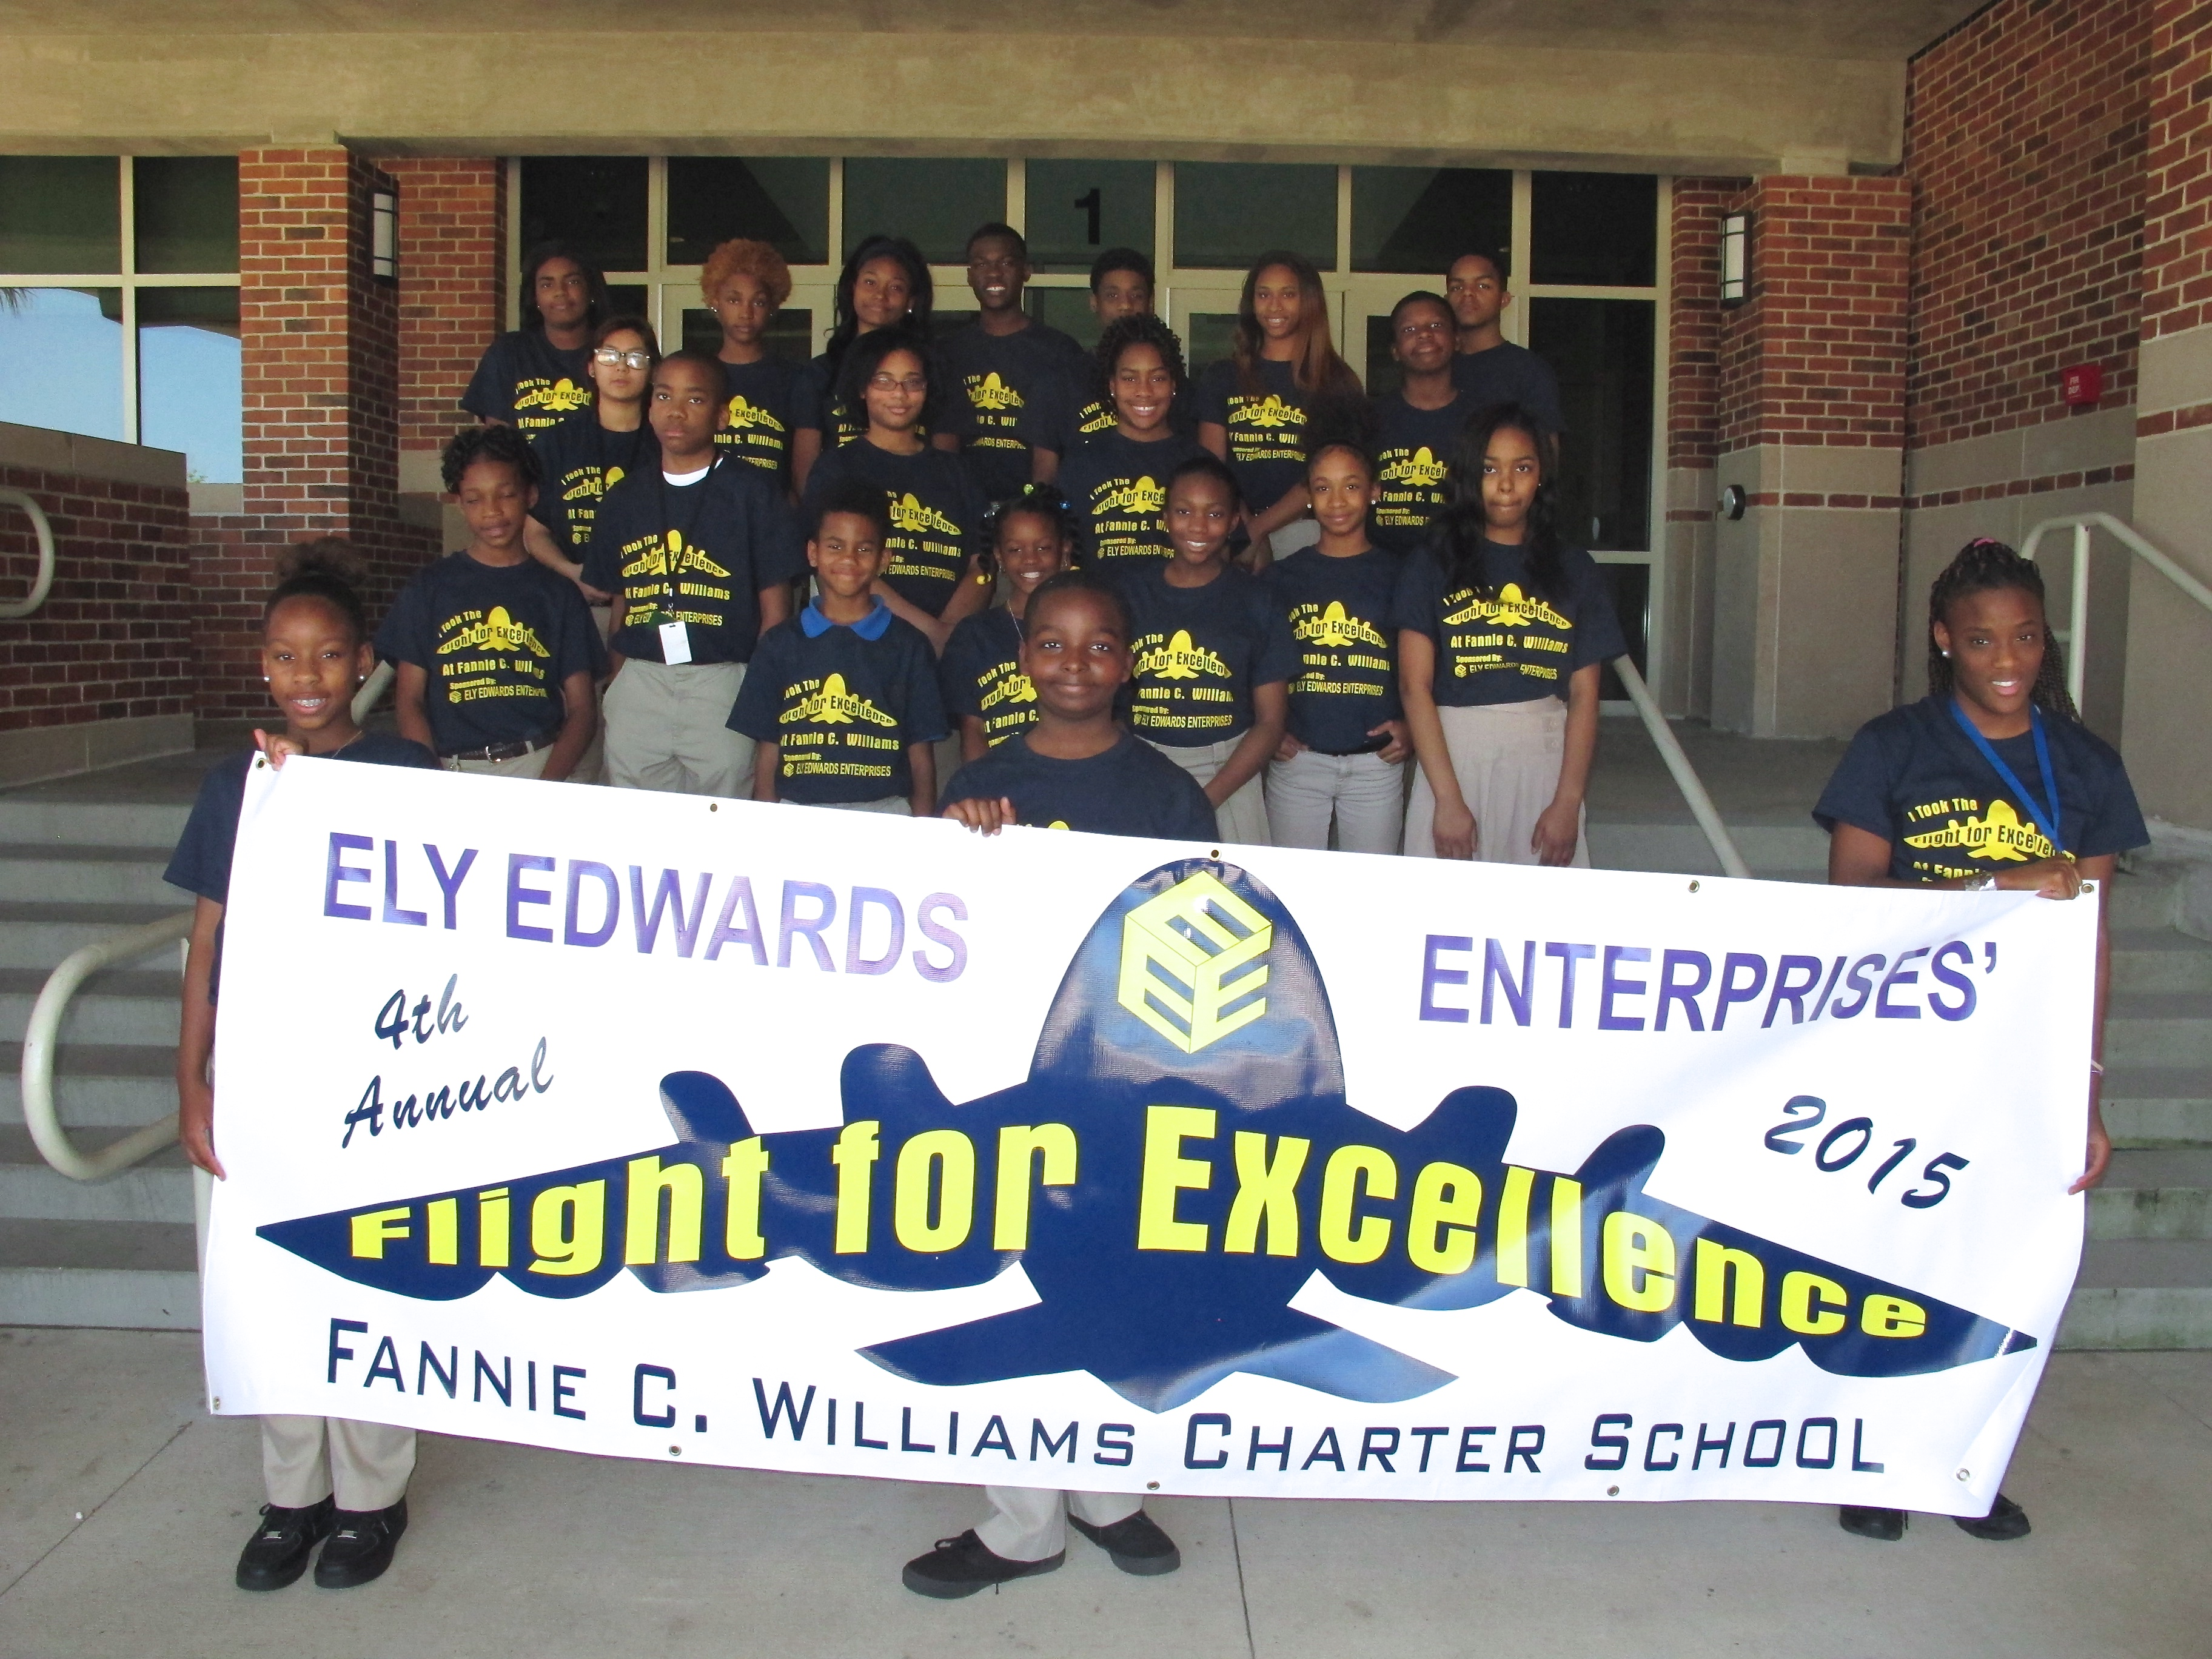 Students with Banner